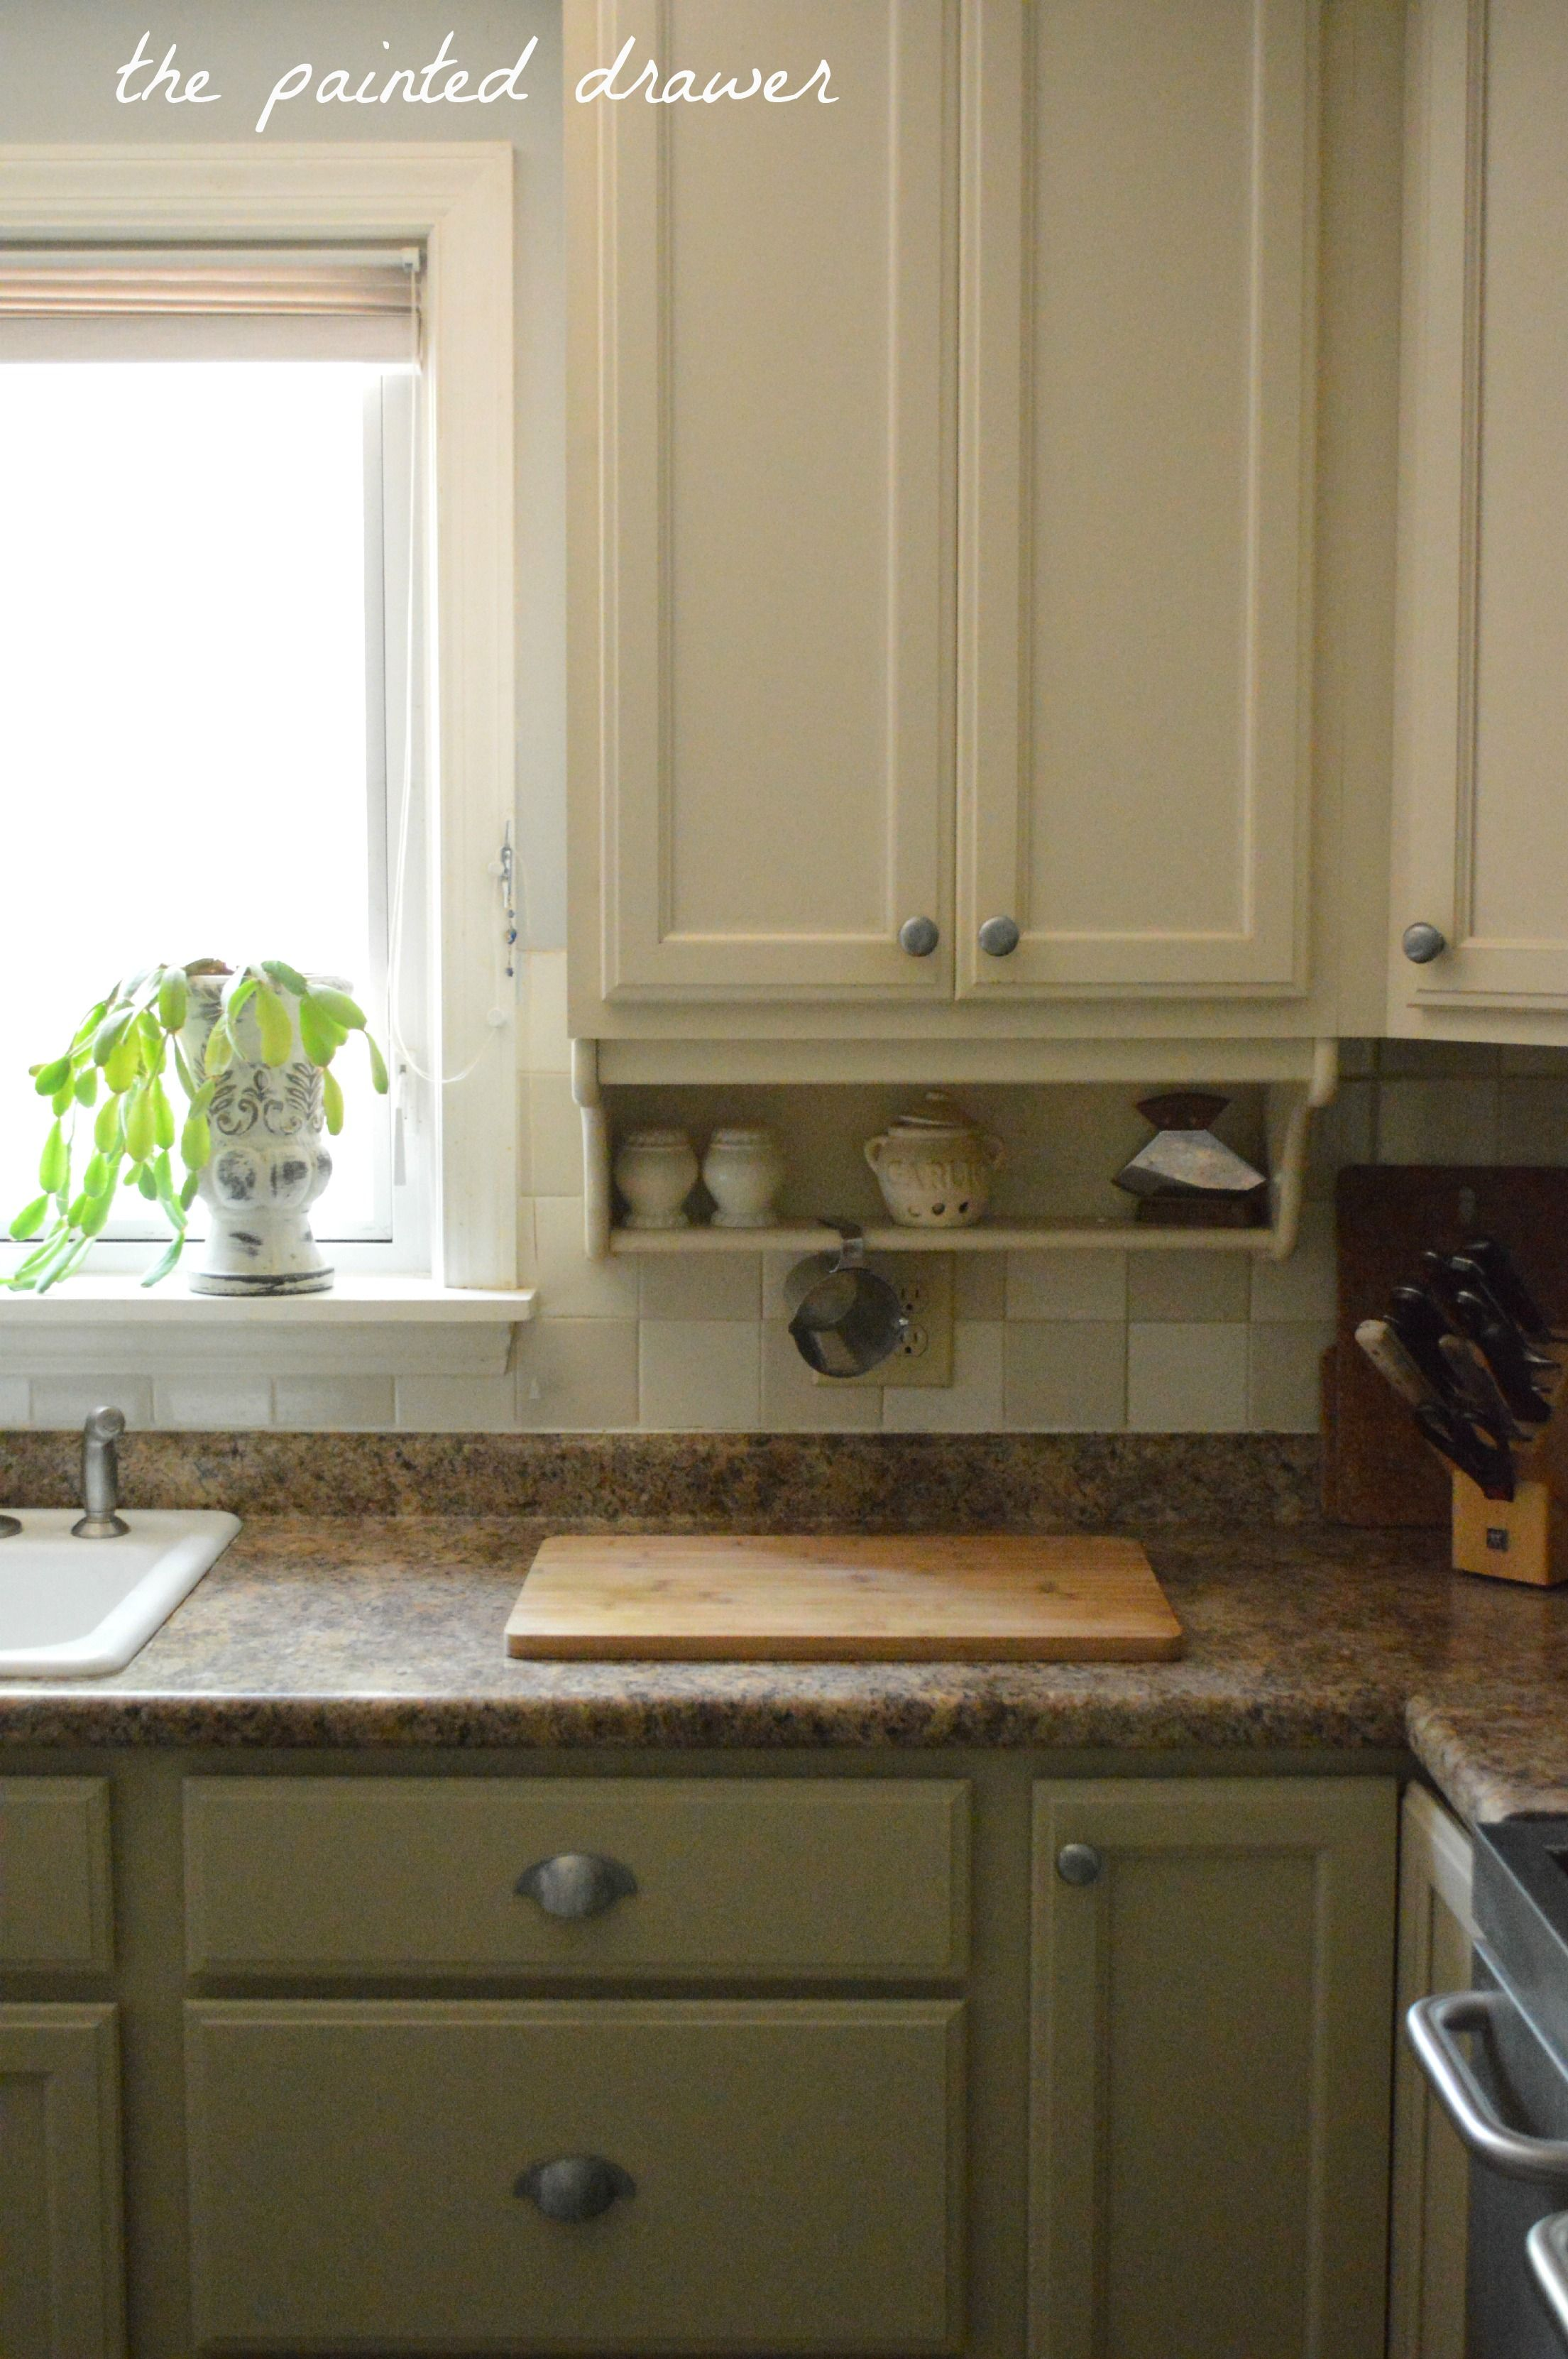 General Finishes Millstone Painted Kitchen Cabinets Milk Paint Kitchen Cabinets Painting Kitchen Cabinets Kitchen Paint